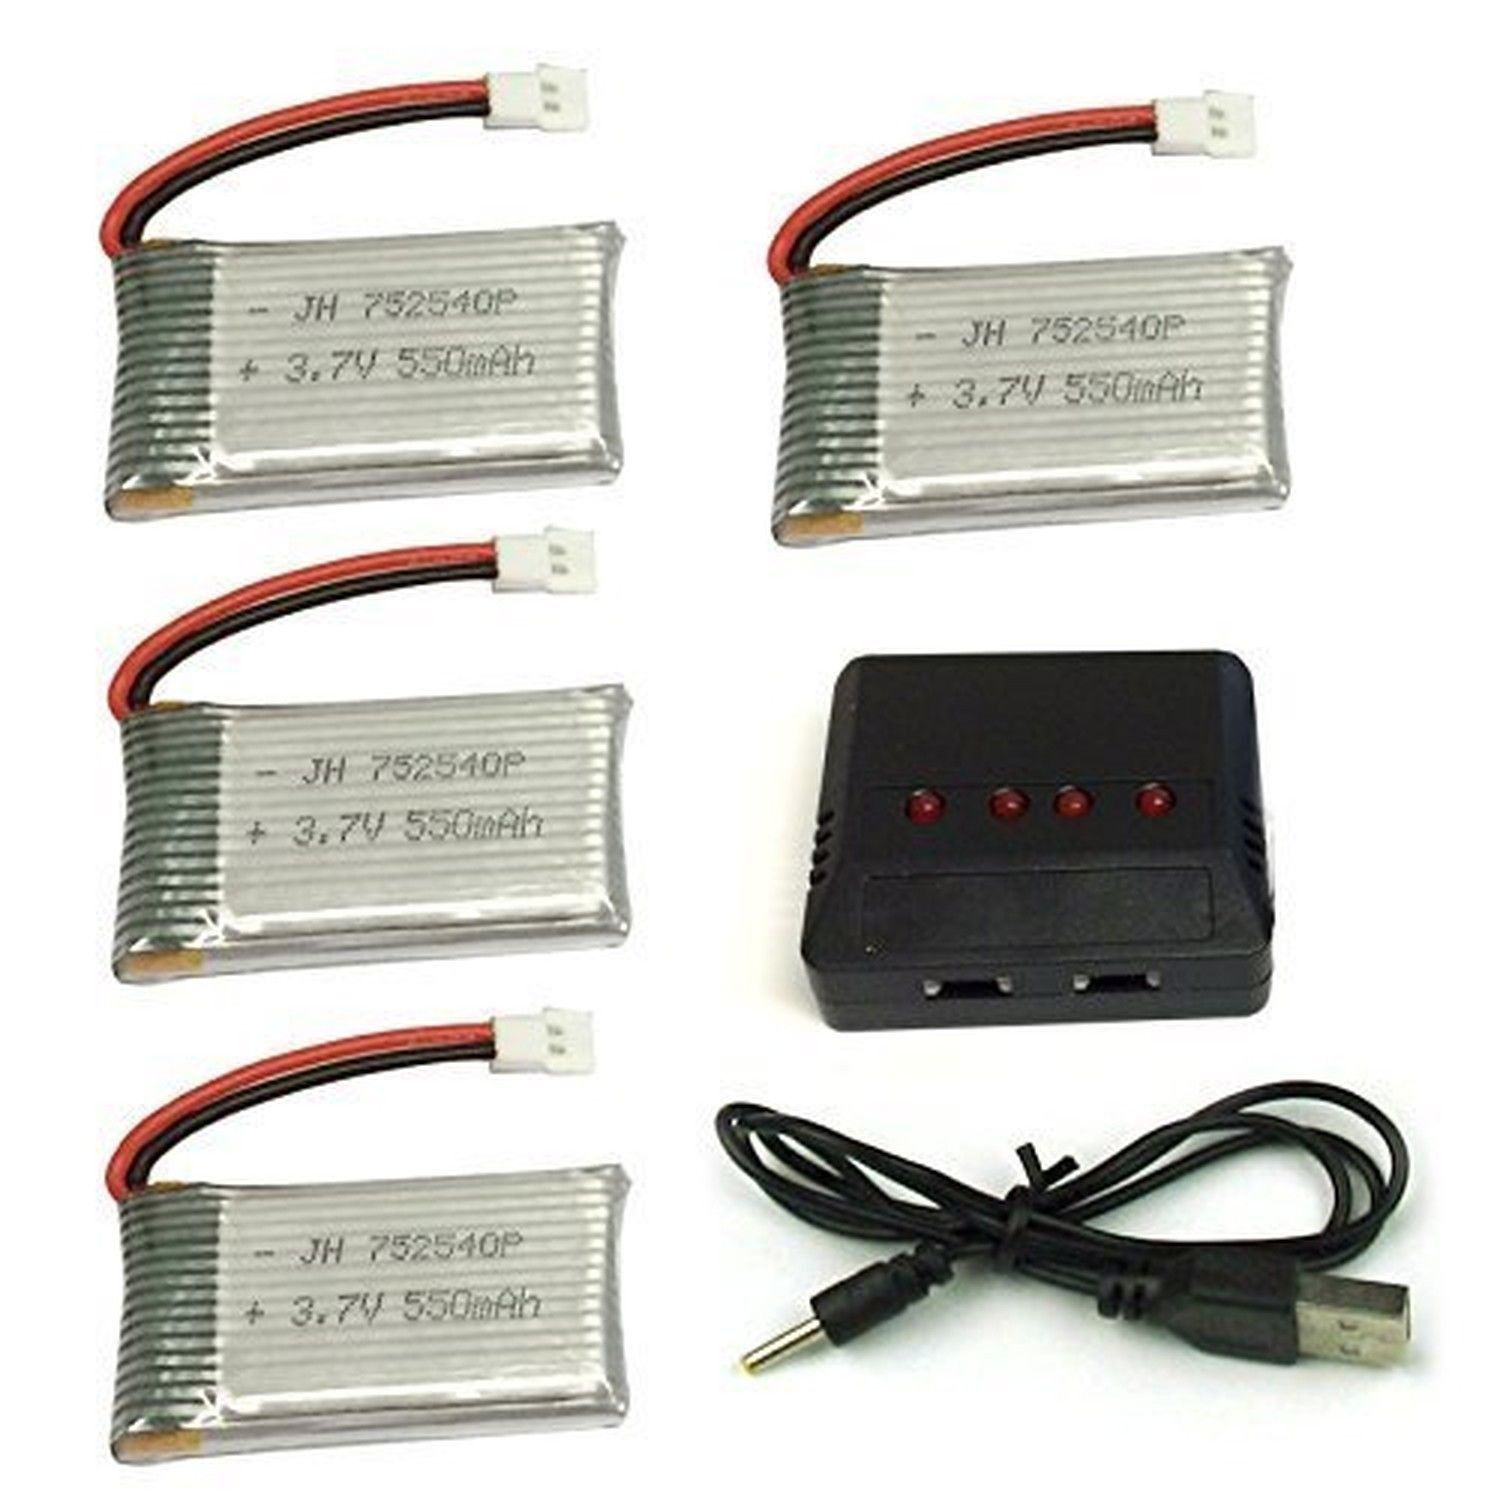 Cheerwing 3.7V 550mAh Lipo Battery (4PCS) with 4 In 1 Battery Charger for Sym...